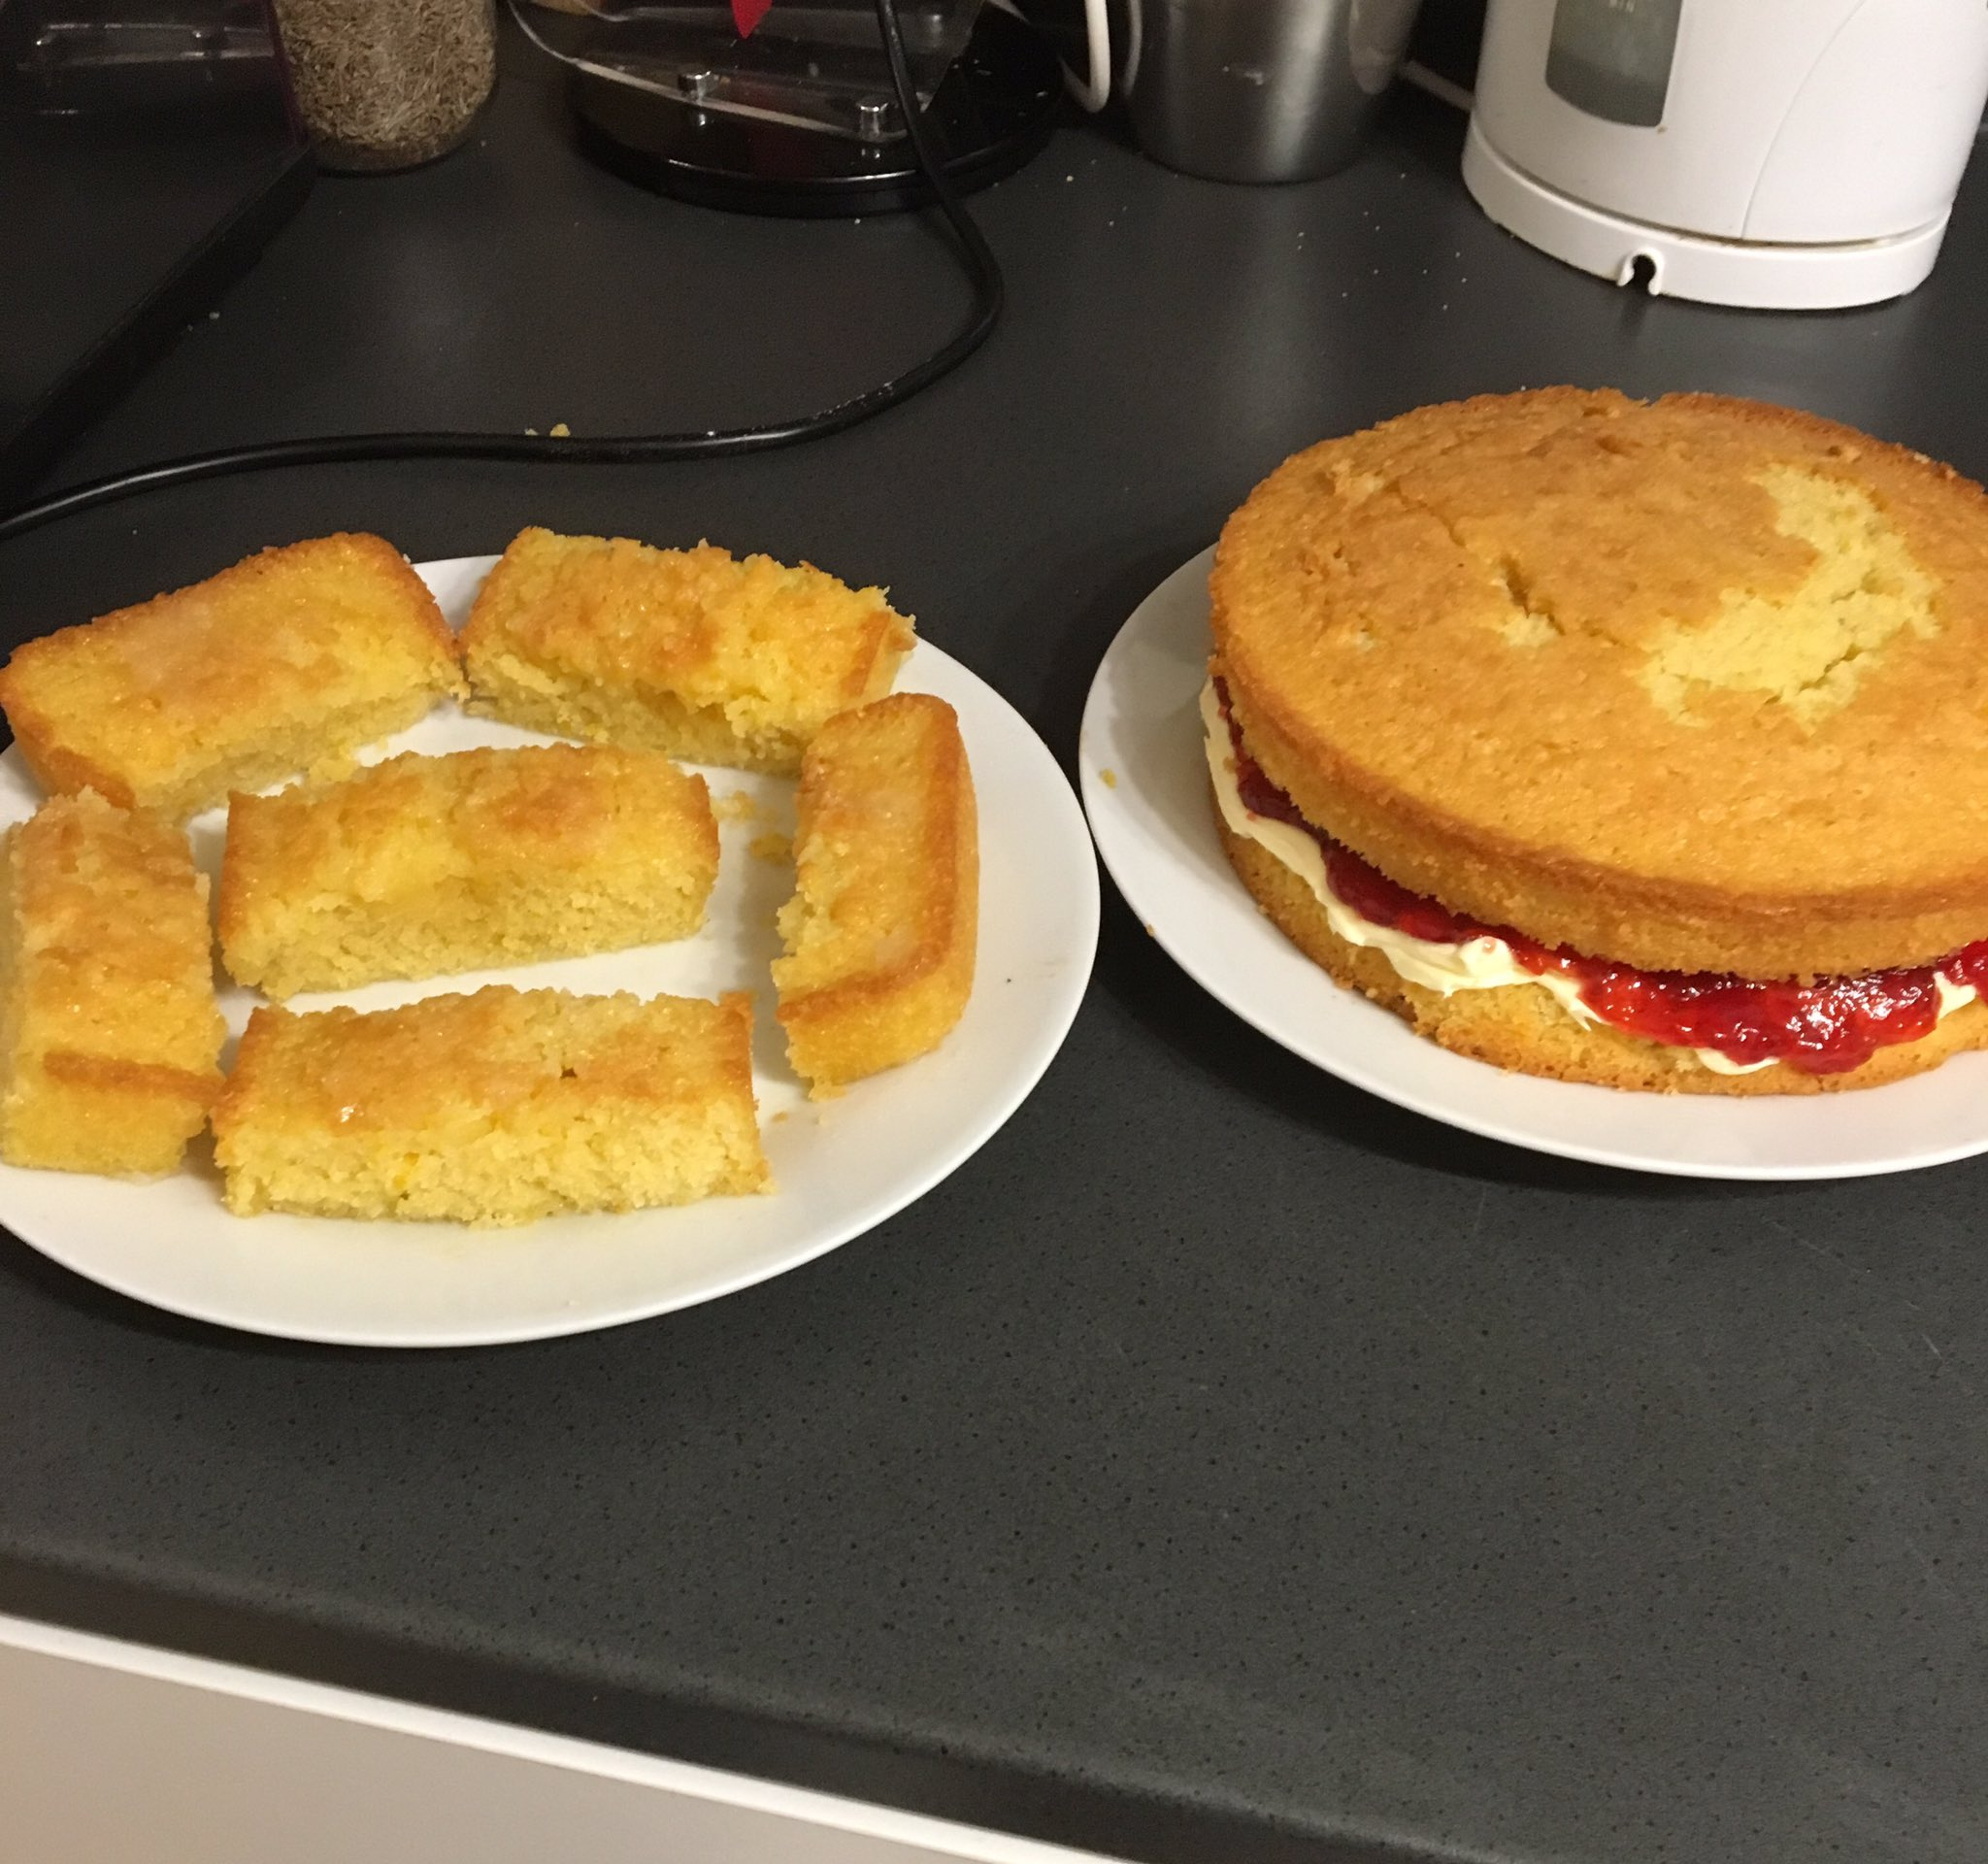 Need these to make it to the #GreatLegalBake tomorrow, must resist eating them 🍰🐷🍰 https://t.co/L632J12eue